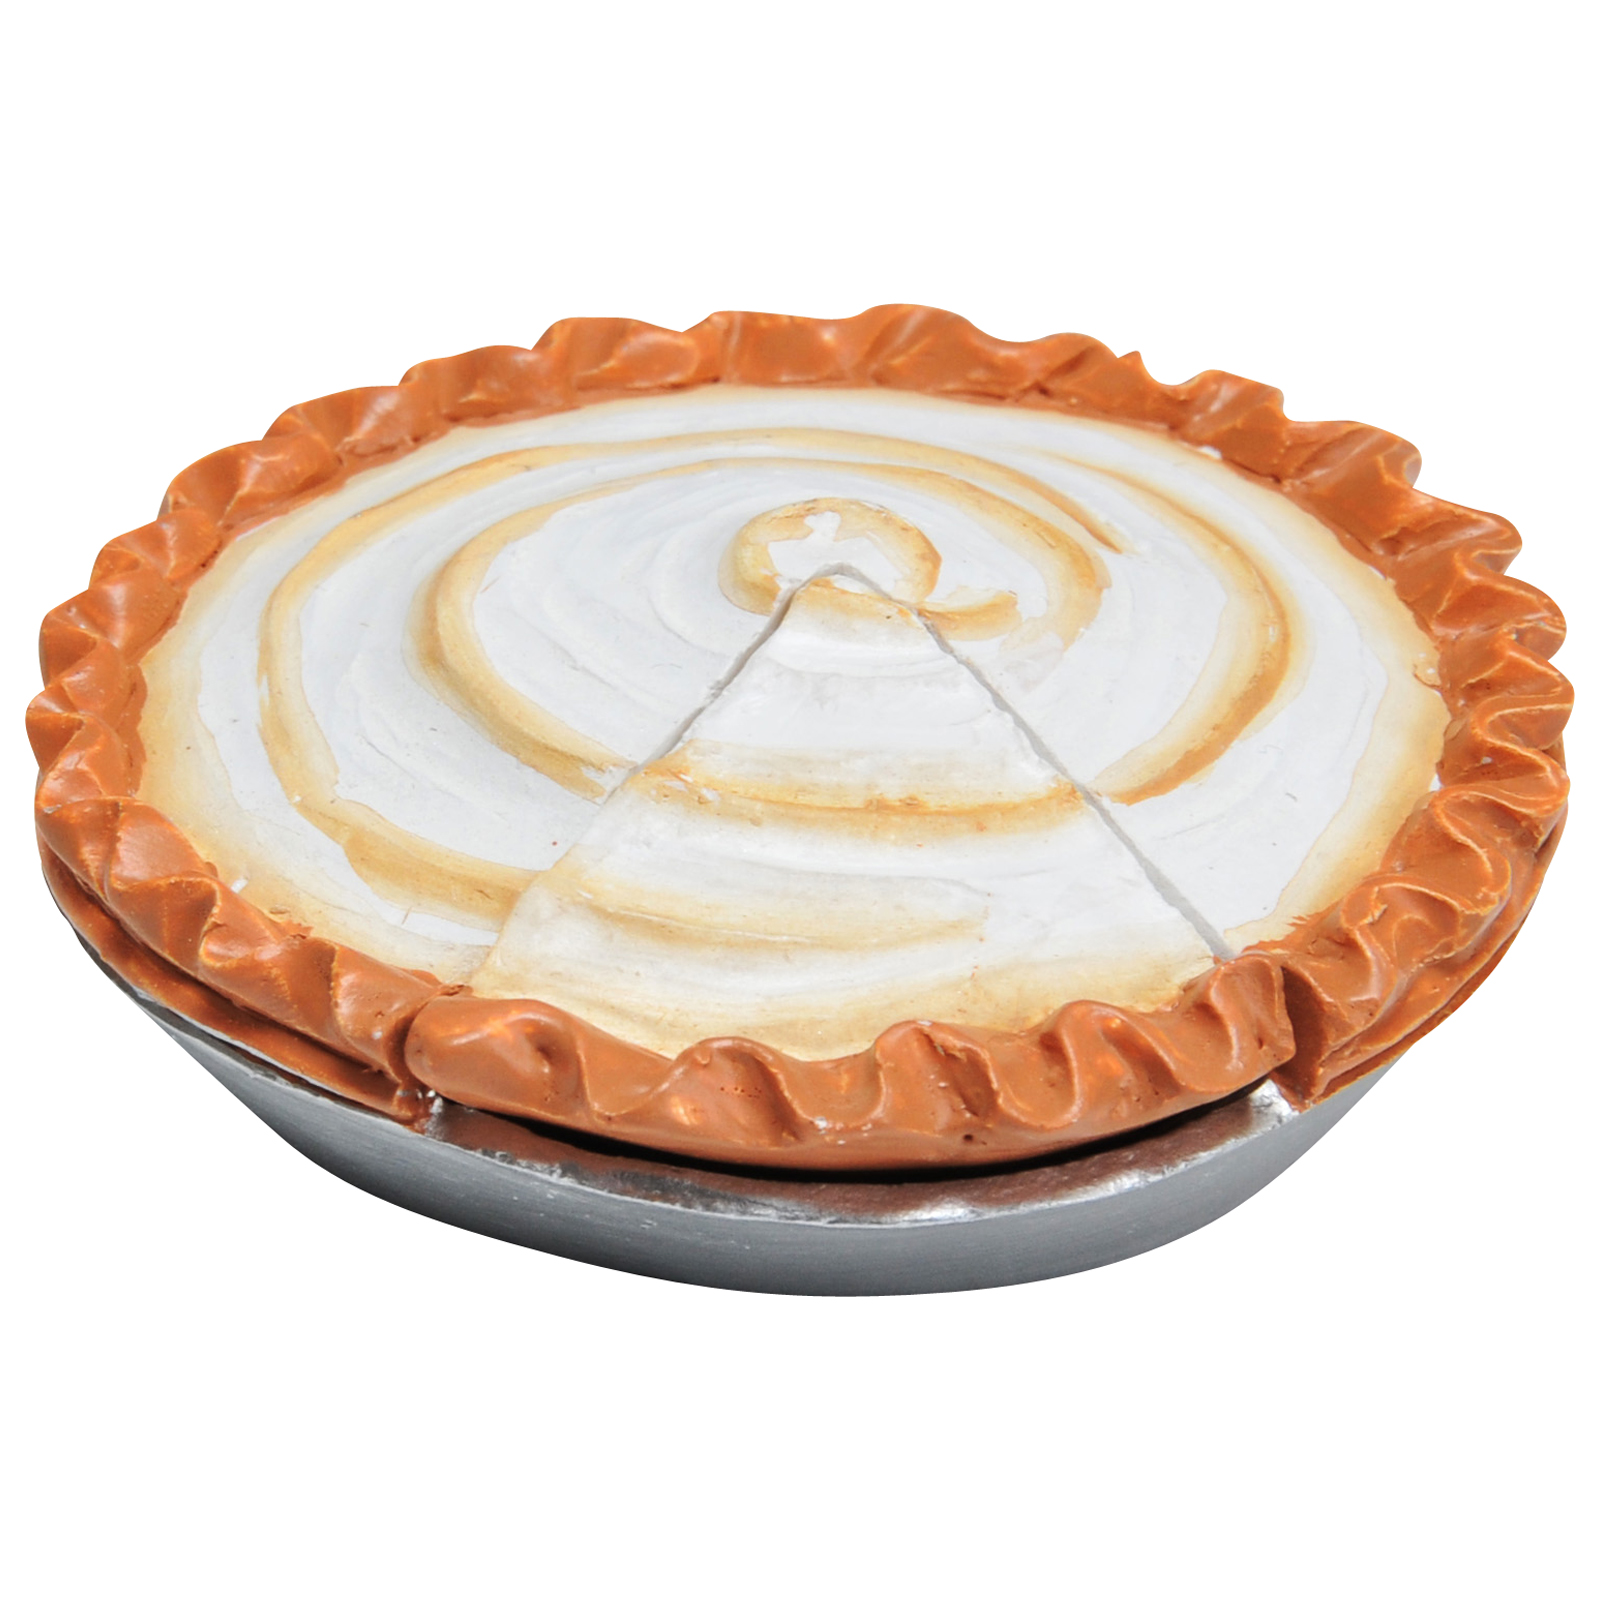 "Bakery Collection Lemon Meringue Pie for 18"" Doll Furniture & Play Kitchen Food Accessories"